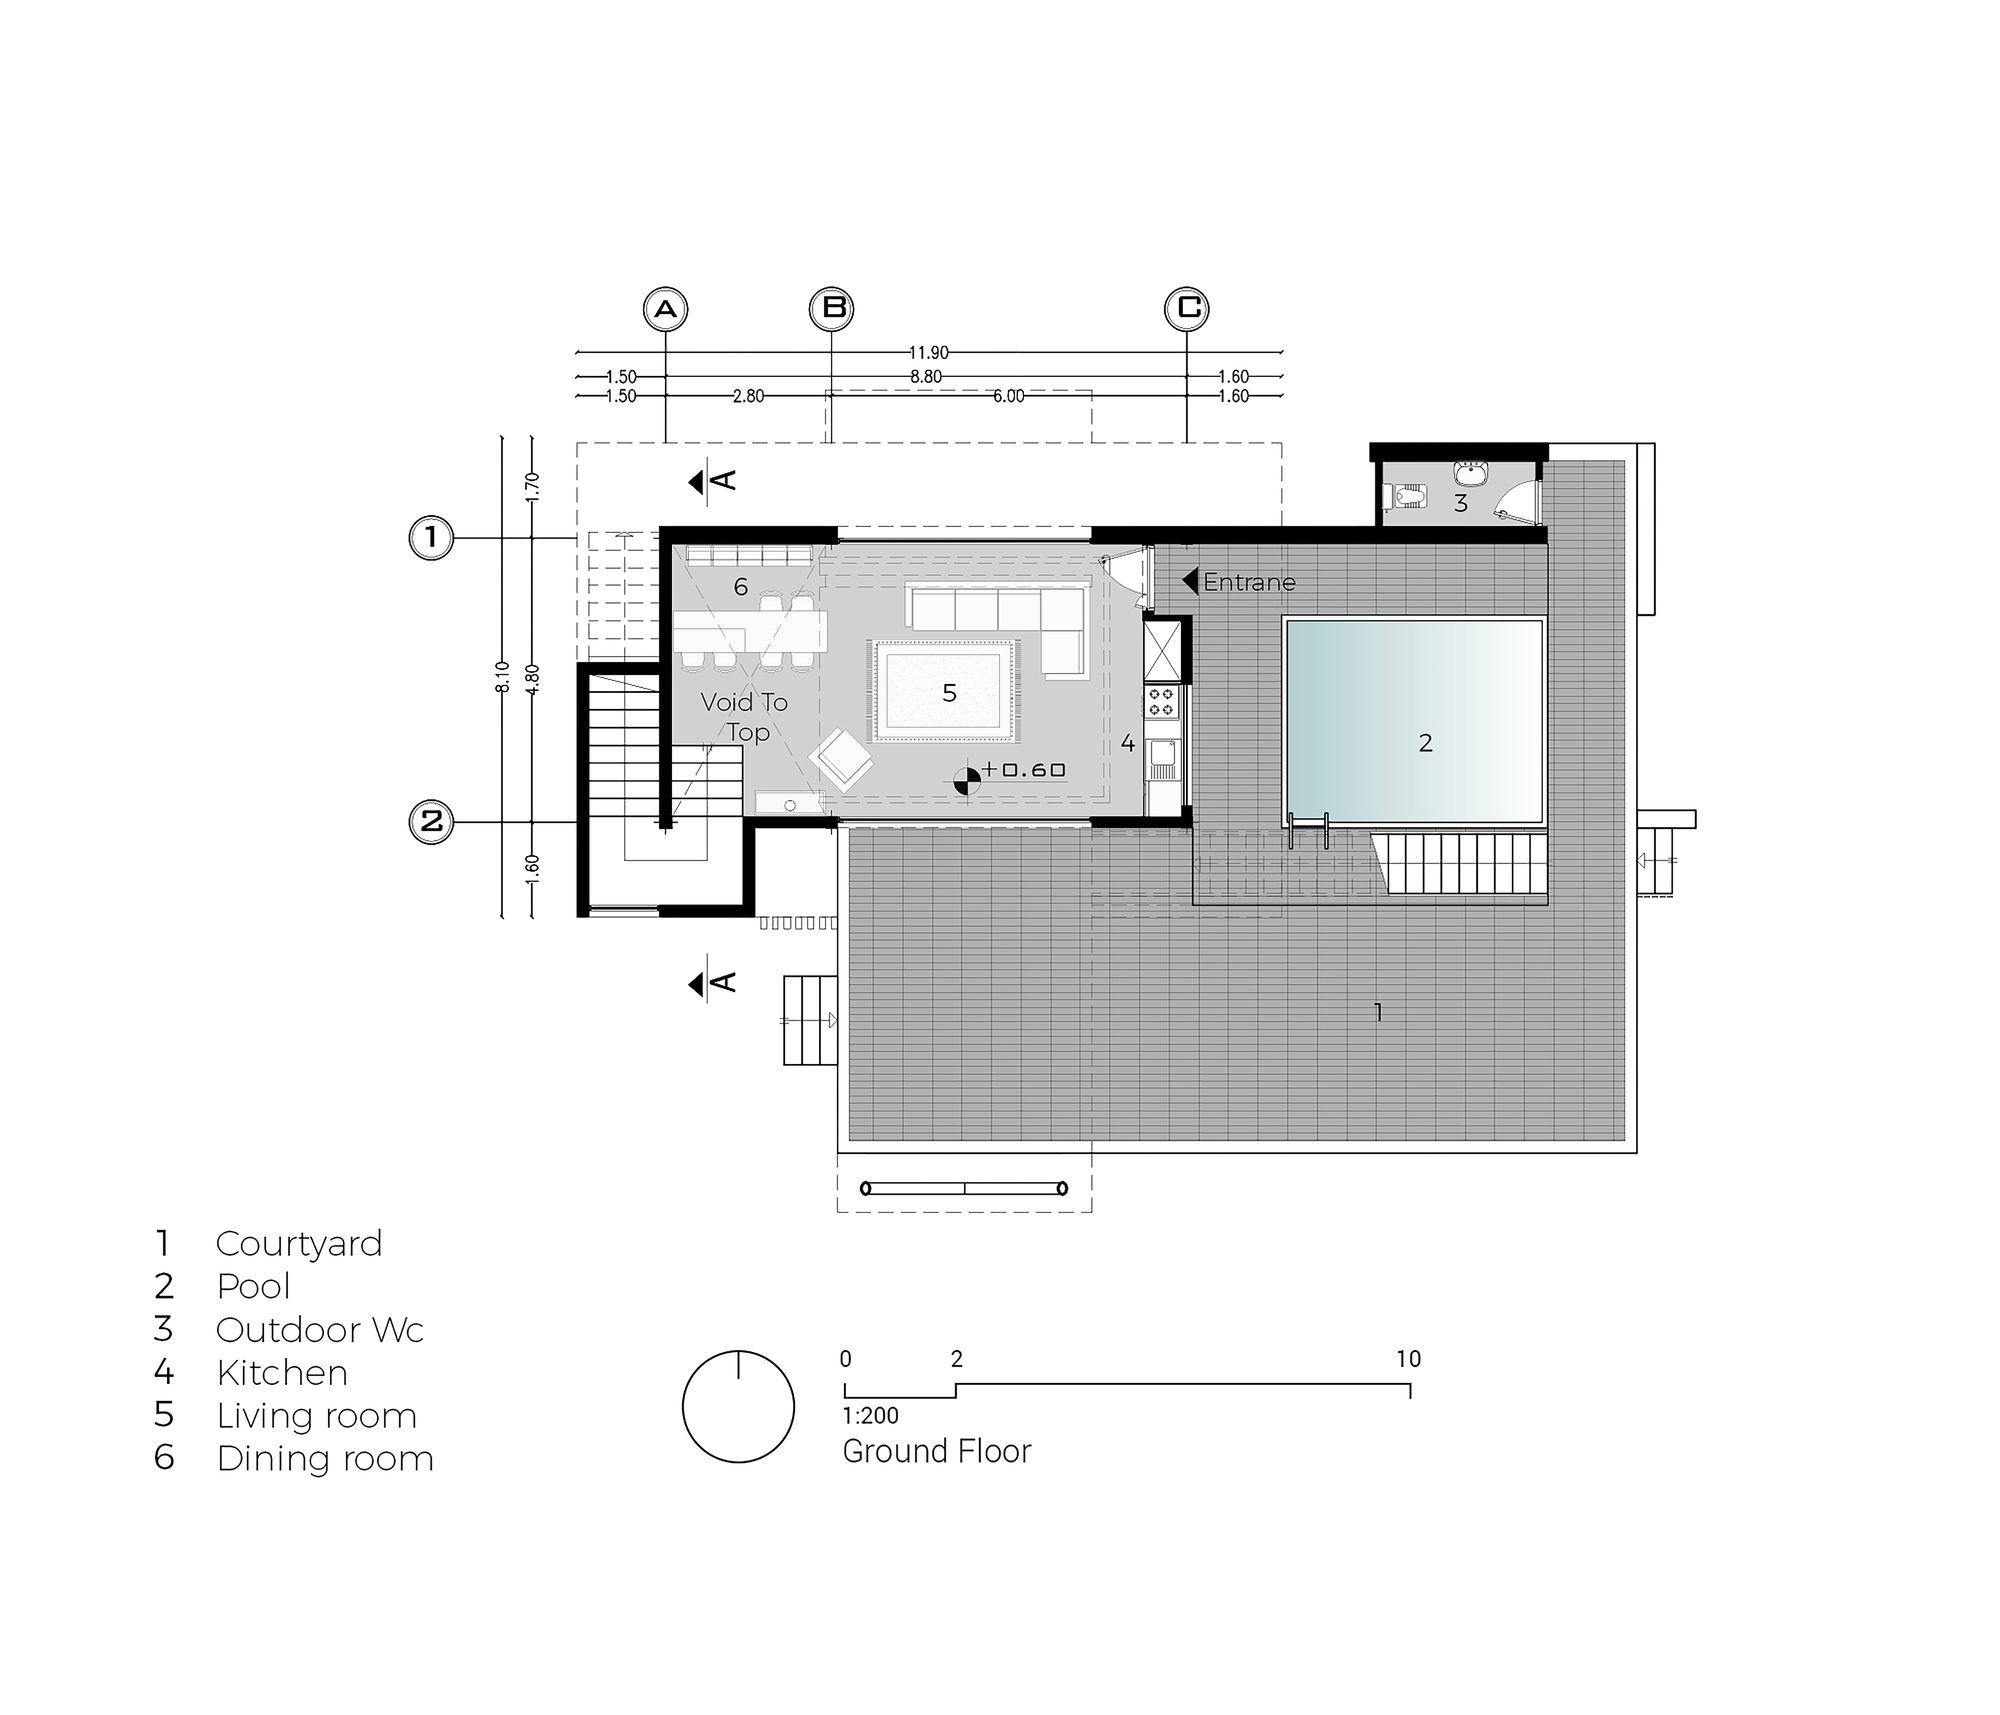 Загородный дом V Villa в Маку, Иран от бюро White Cube Atelier, HQ architecture, HQarch, HQ arch, high quality architecture